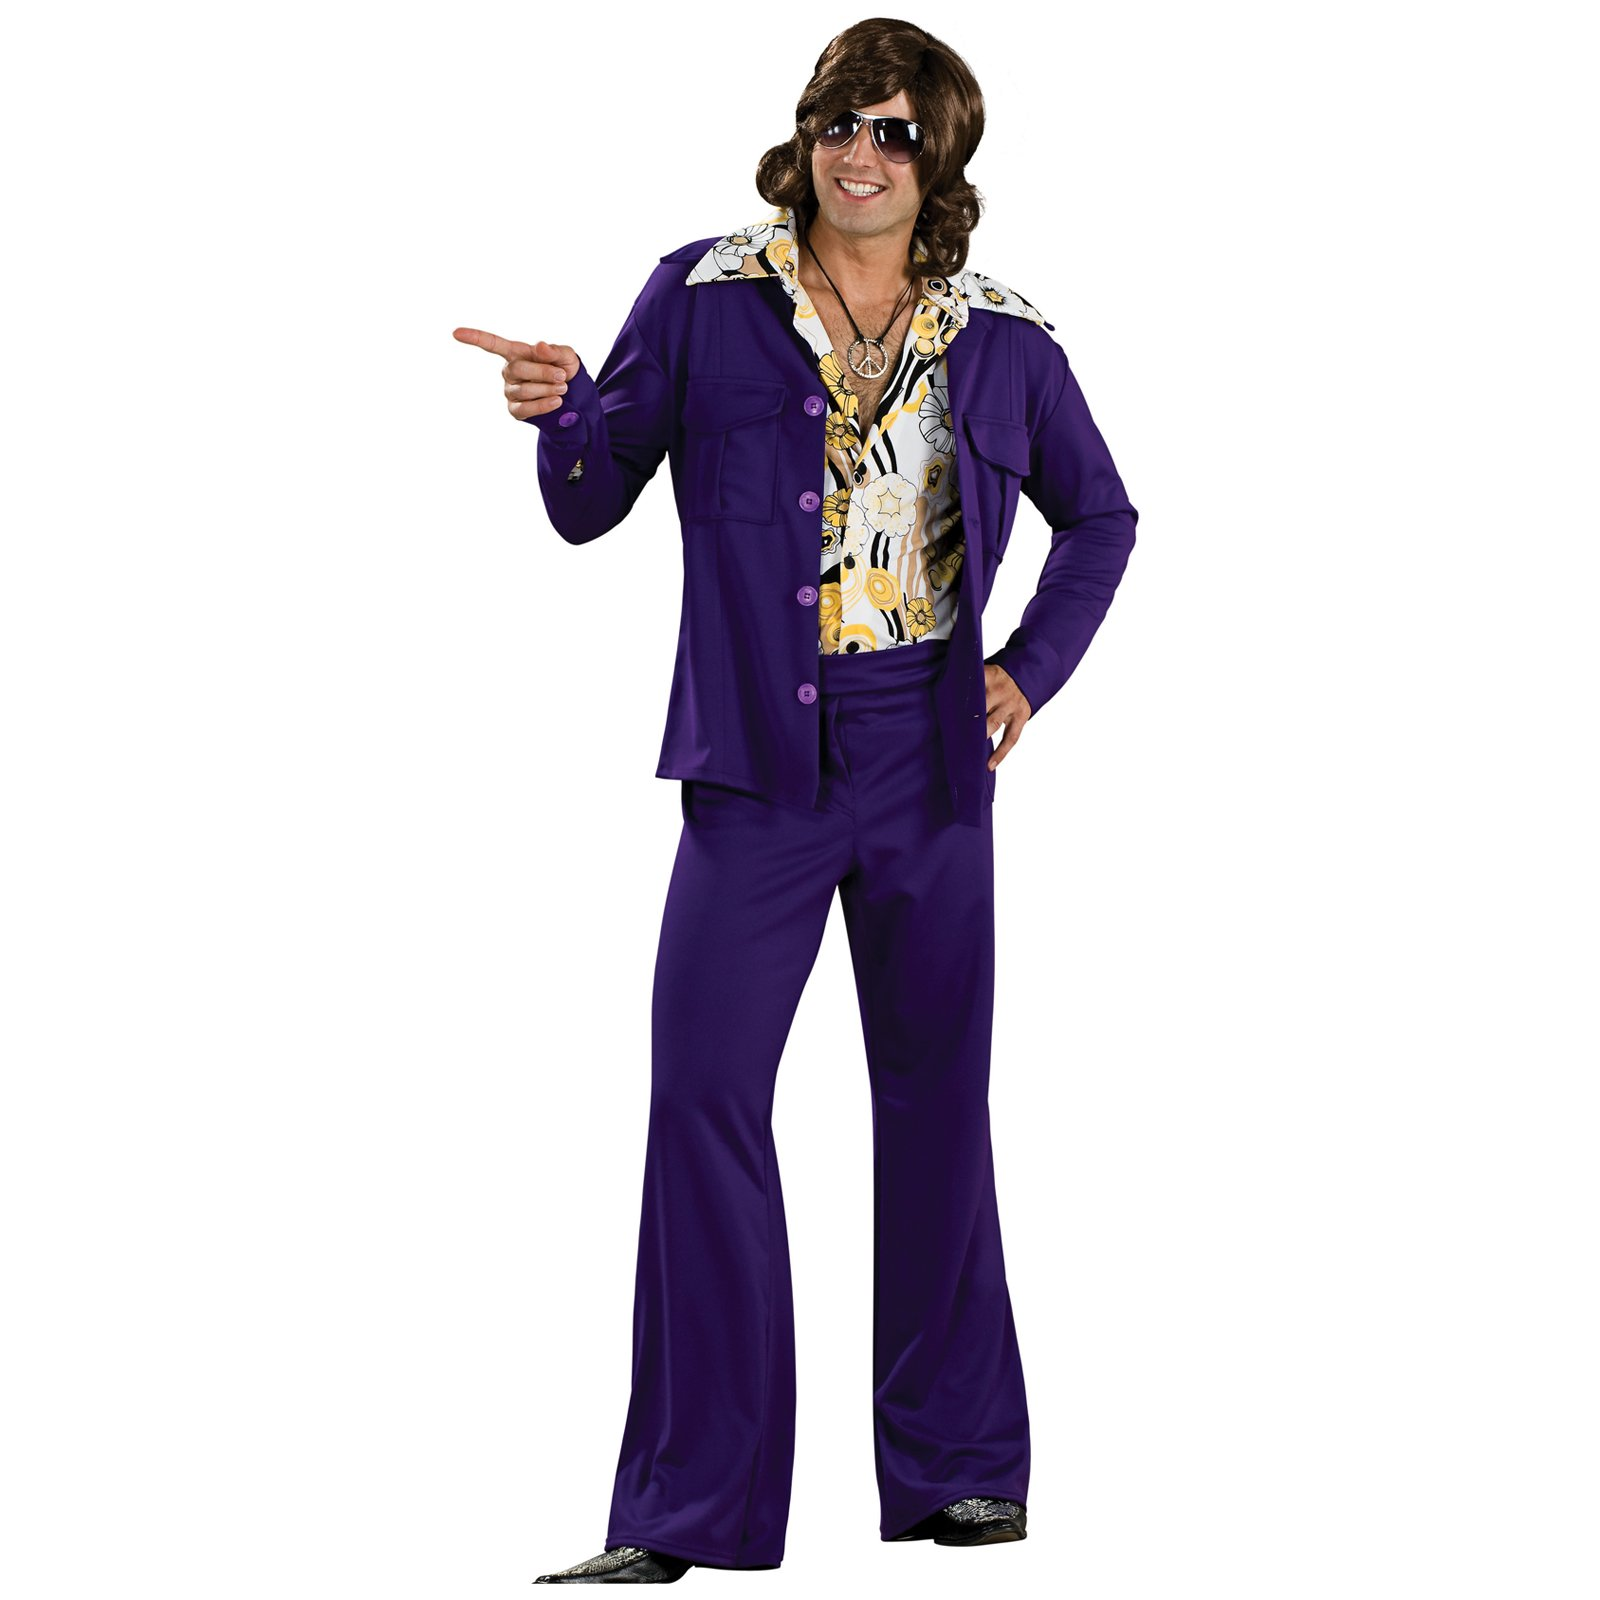 Is your website a leisure suit?